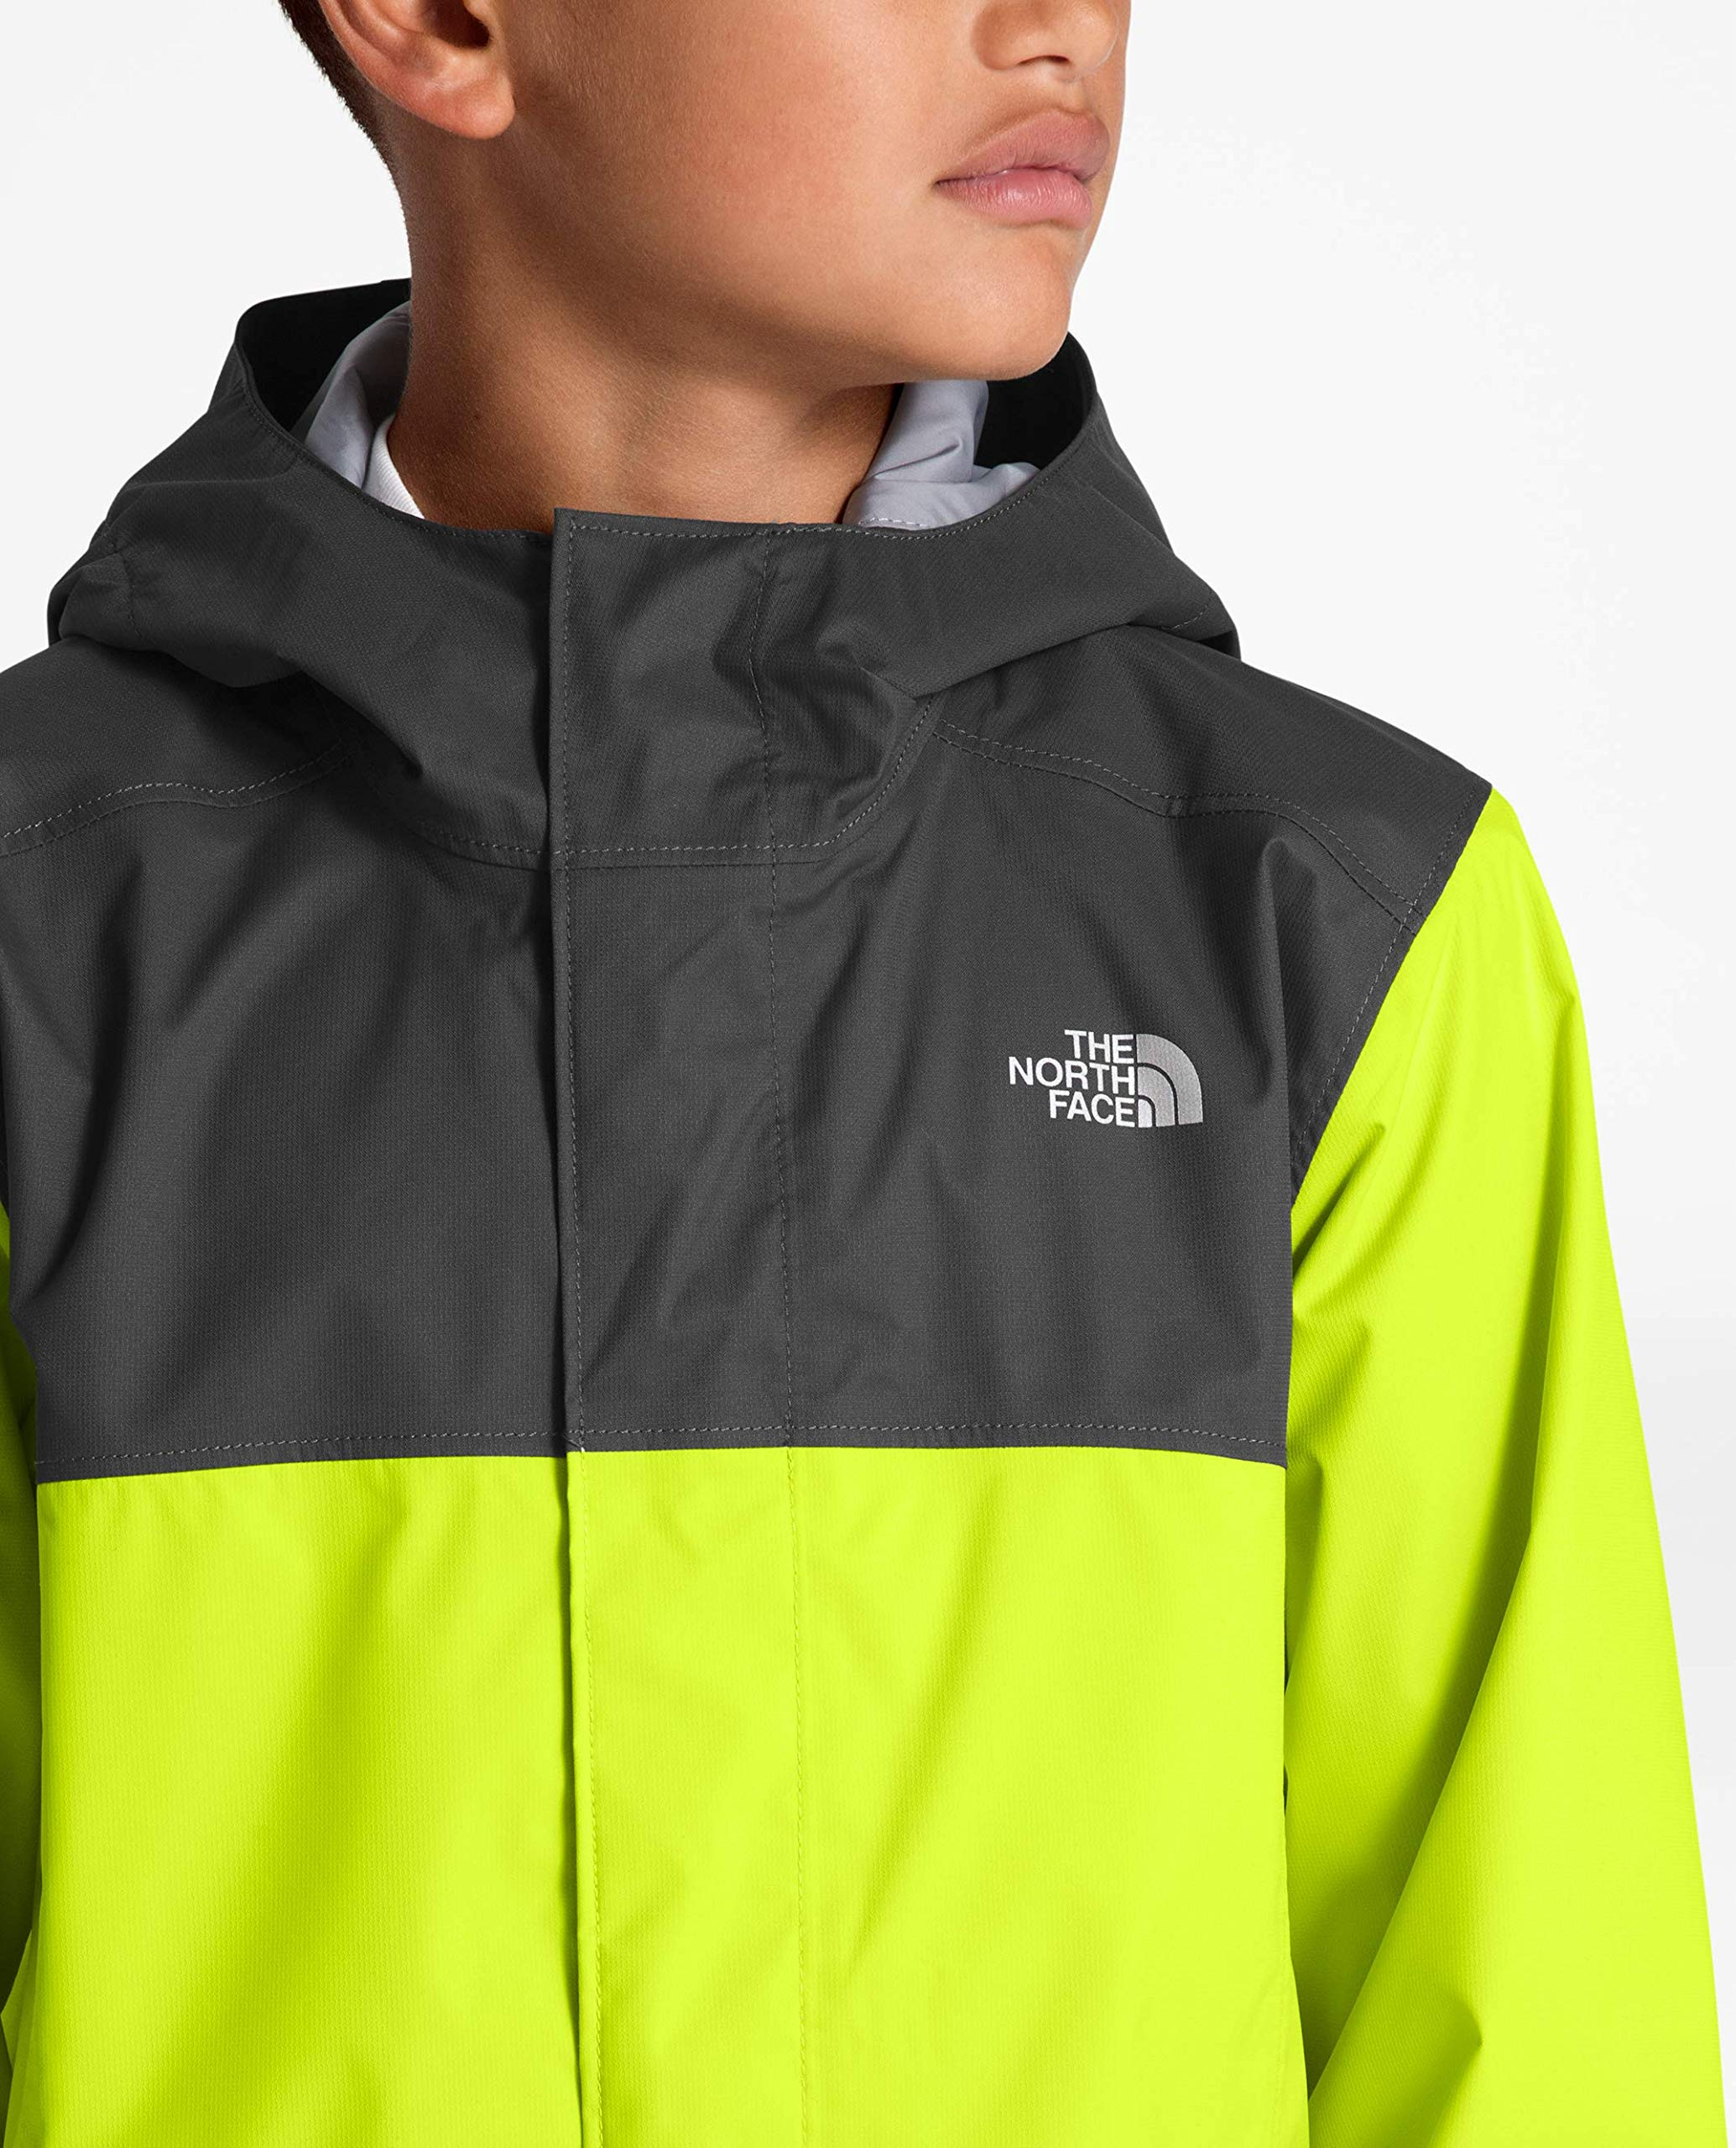 The North Face Kids Boy's Resolve Reflective Jacket (Little Kids/Big Kids) Lime Green Small by The North Face (Image #4)